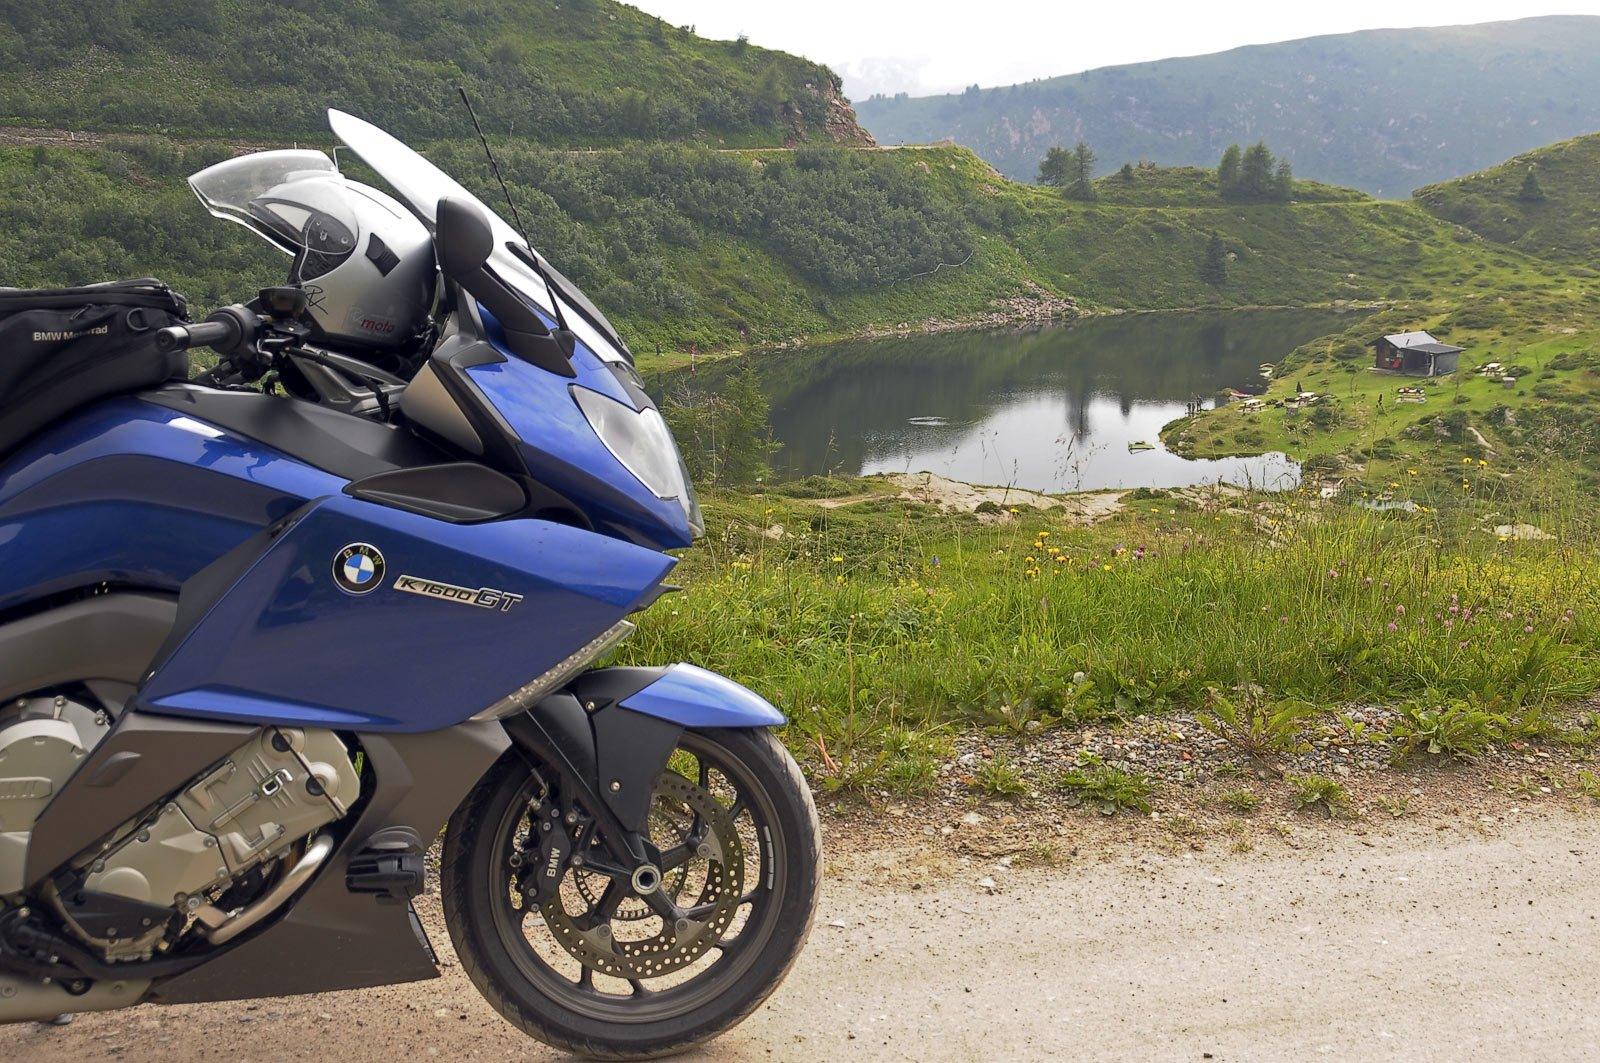 BMW K1600GT - am Croce Domini - totale Ruhe